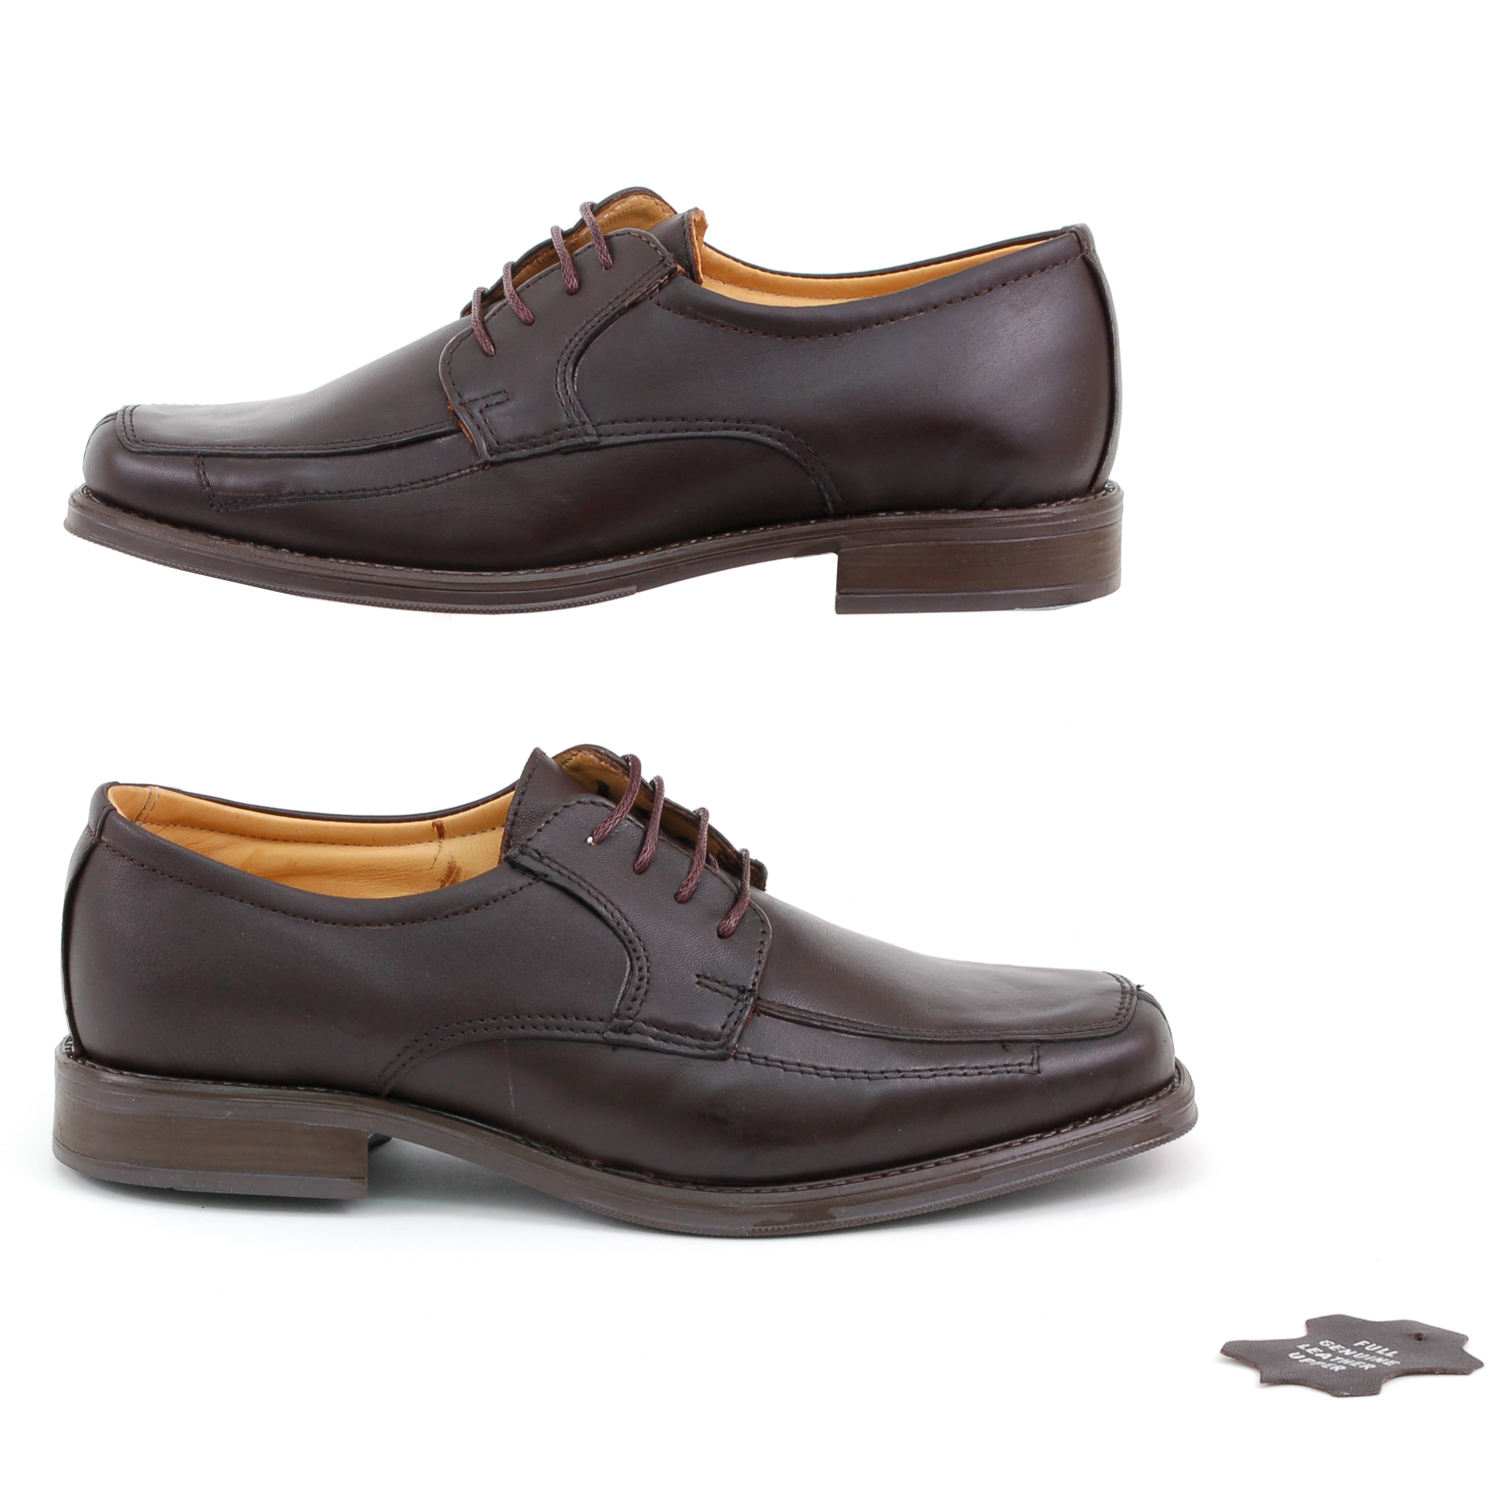 Mens-Lace-Up-Oxfords-Dress-Shoes-Genuine-Leather-Moc-Toe-Giorgio-Brutini-Padded thumbnail 21